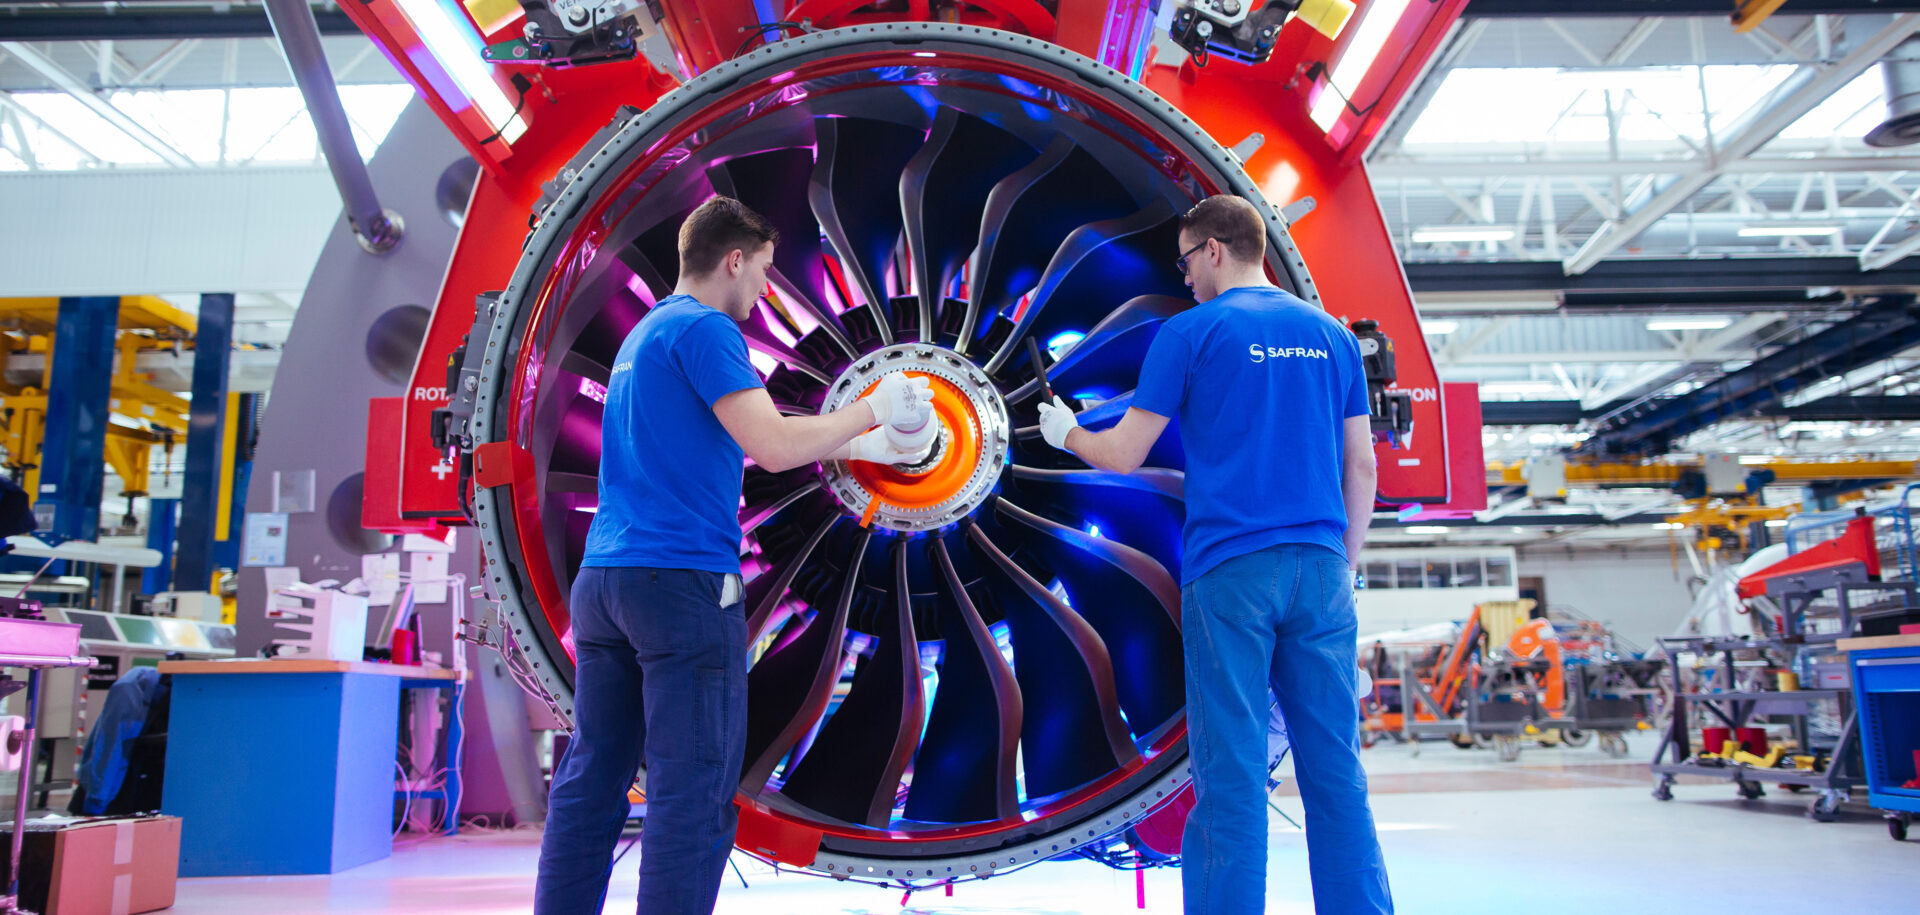 The LEAP engine represents a major technological step forward.